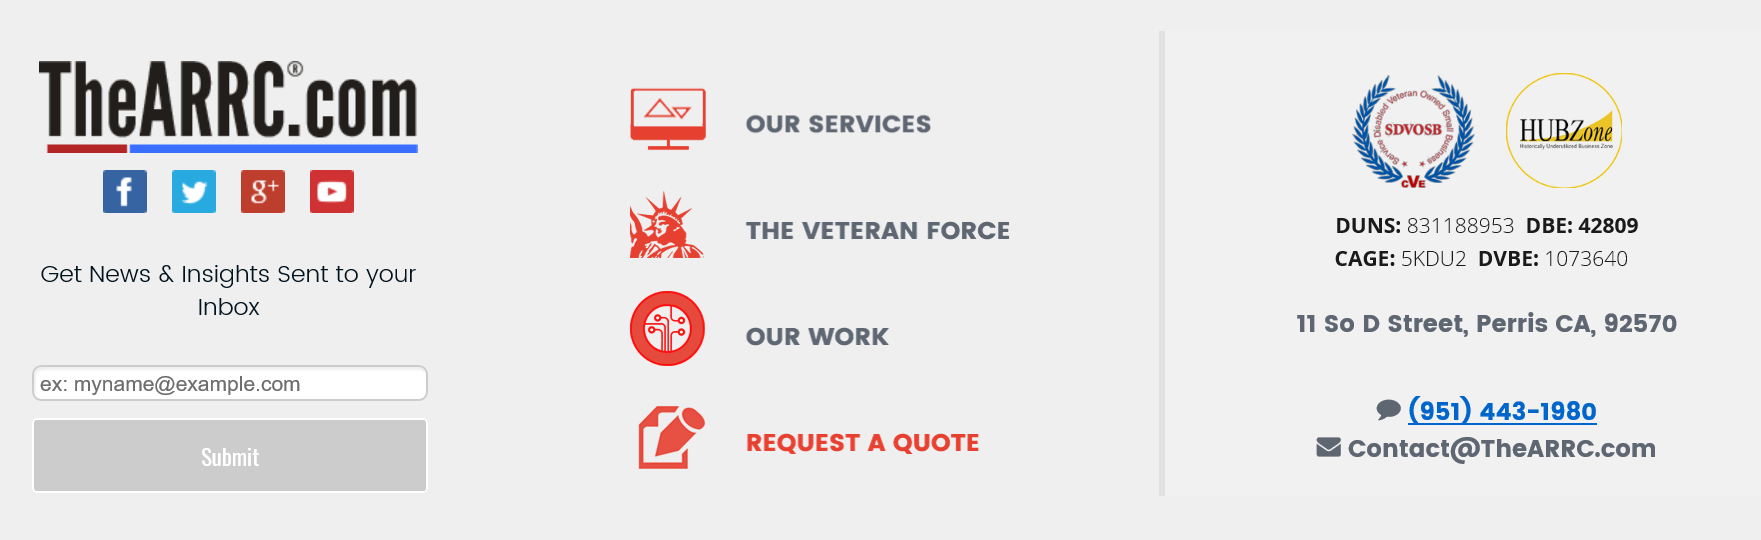 Opportunities for veterans opps4vets blog is your cve logo displayed on your website xflitez Gallery